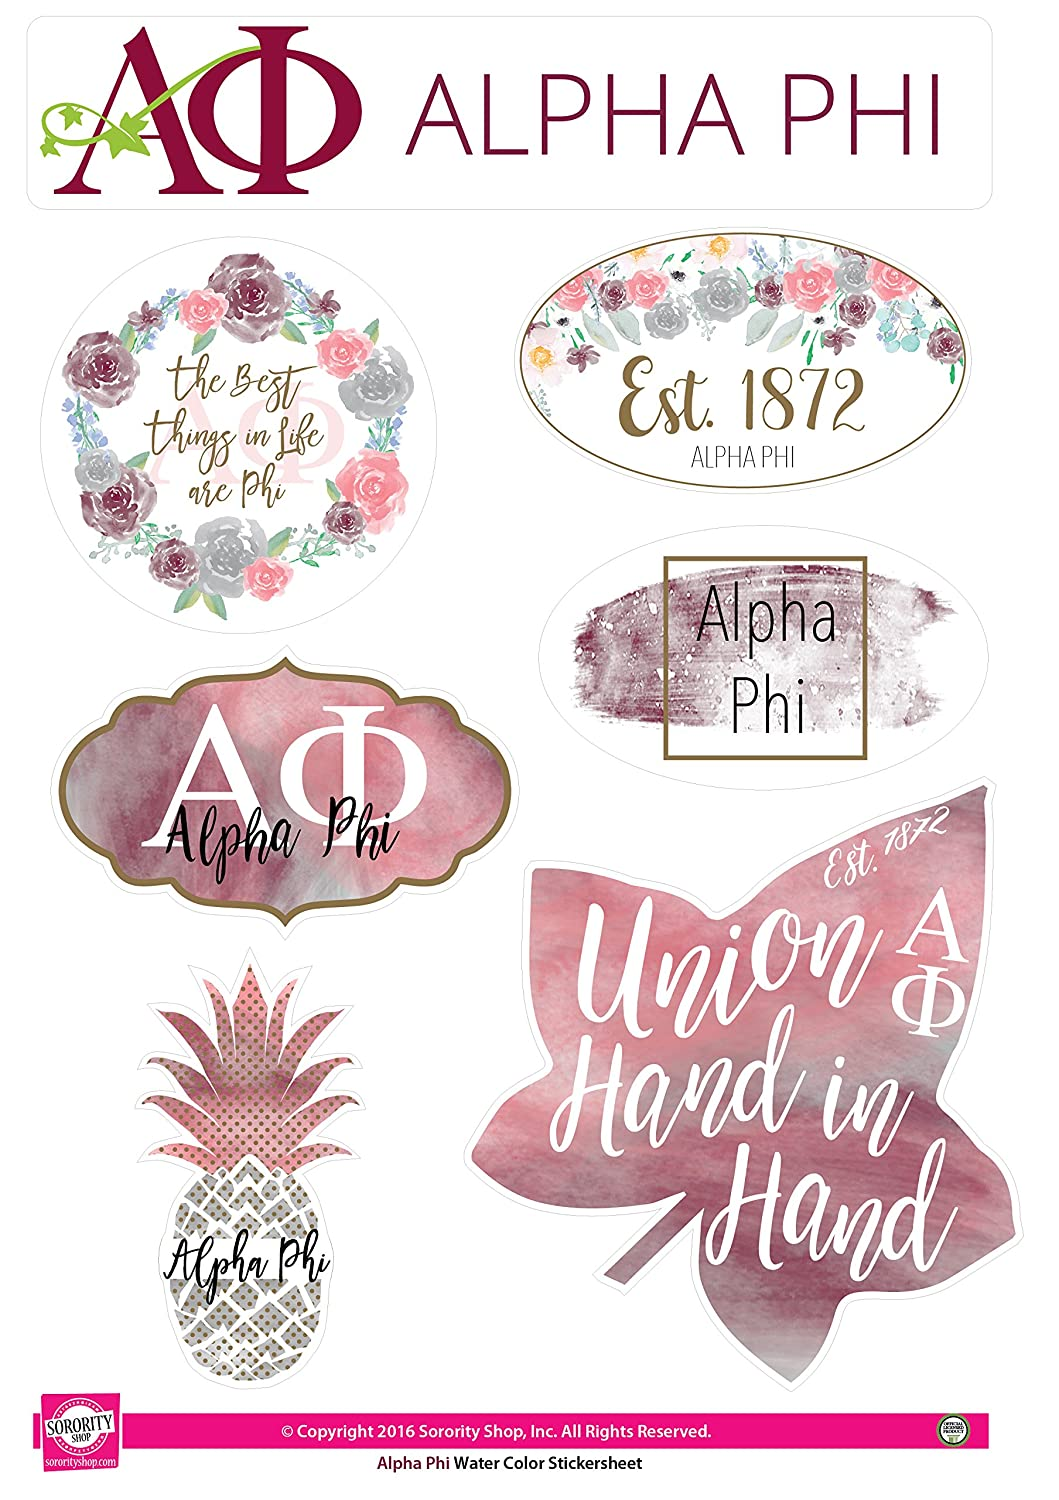 Alpha Phi - Sticker Sheet - Watercolor Theme